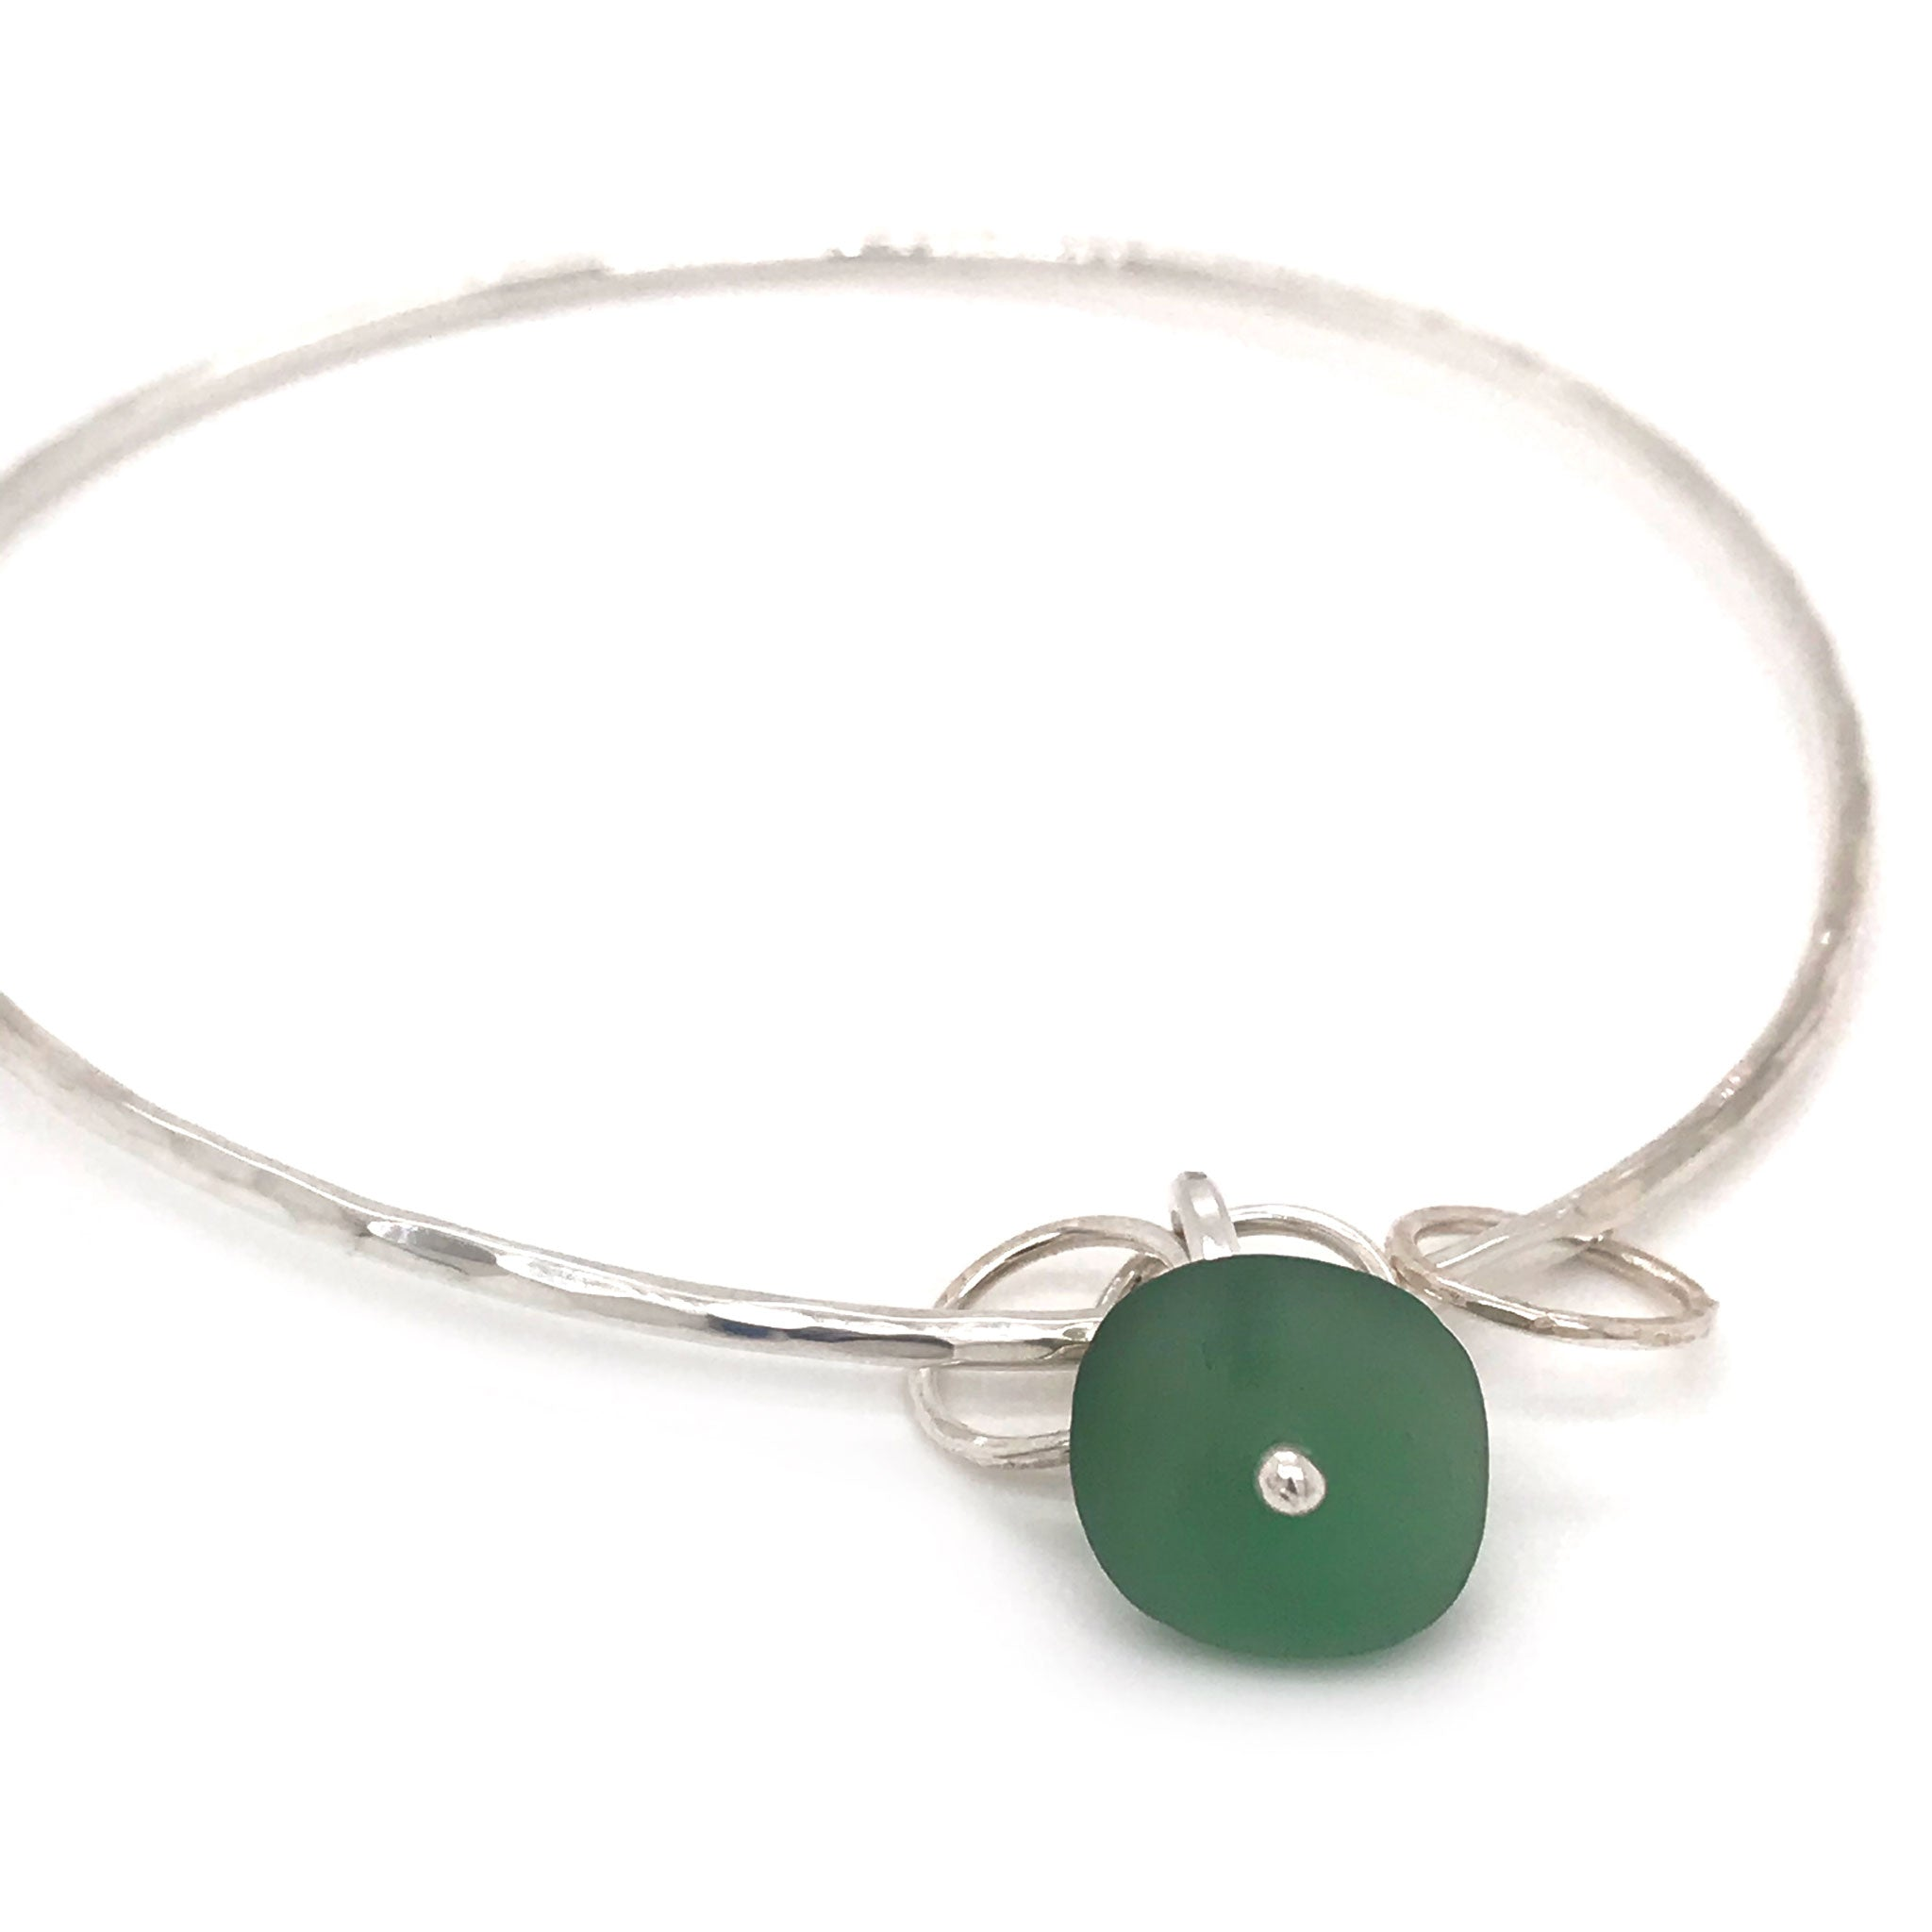 sterling silver bangle with green seaglass Kriket broadhurst jewellery Australian made